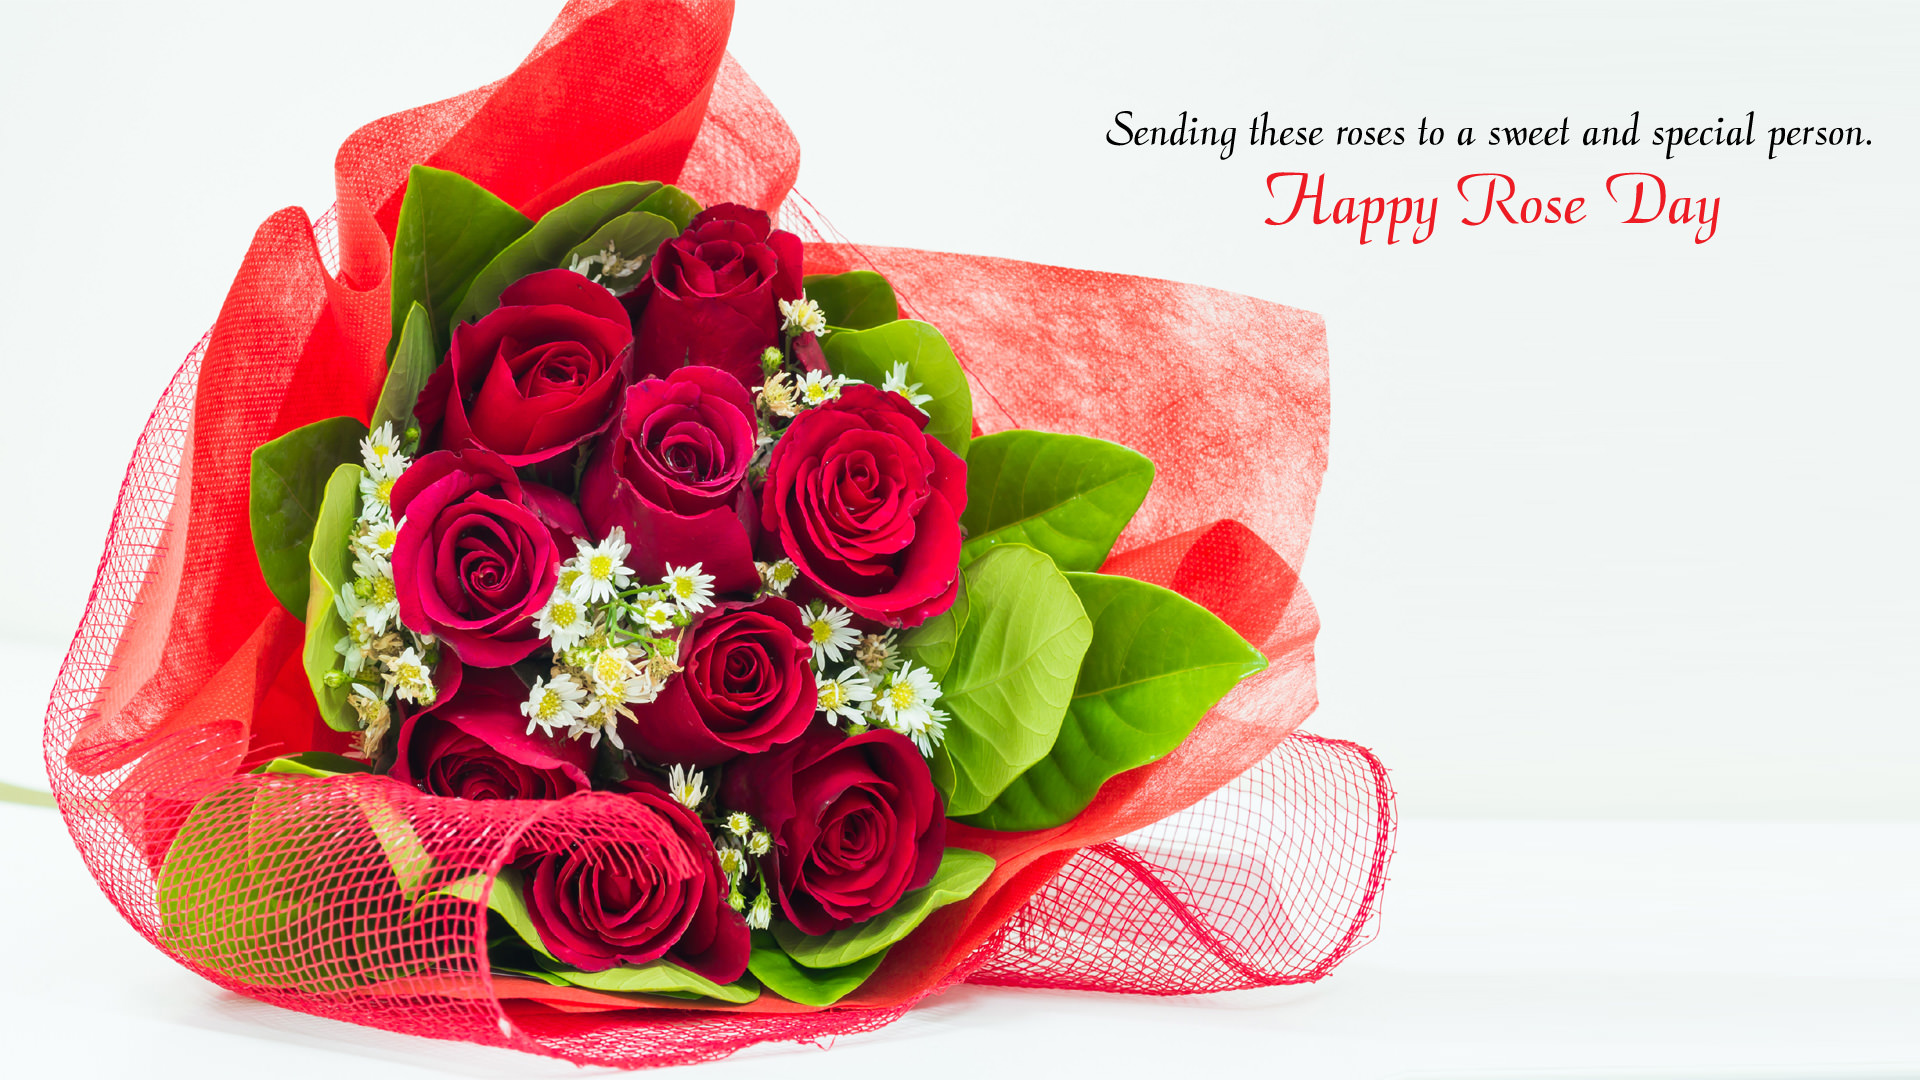 Flowers Wallpapers For Desktop Full Size Hd 7th Feb Rose Day Wallpaper Hd All Color Of Roses For